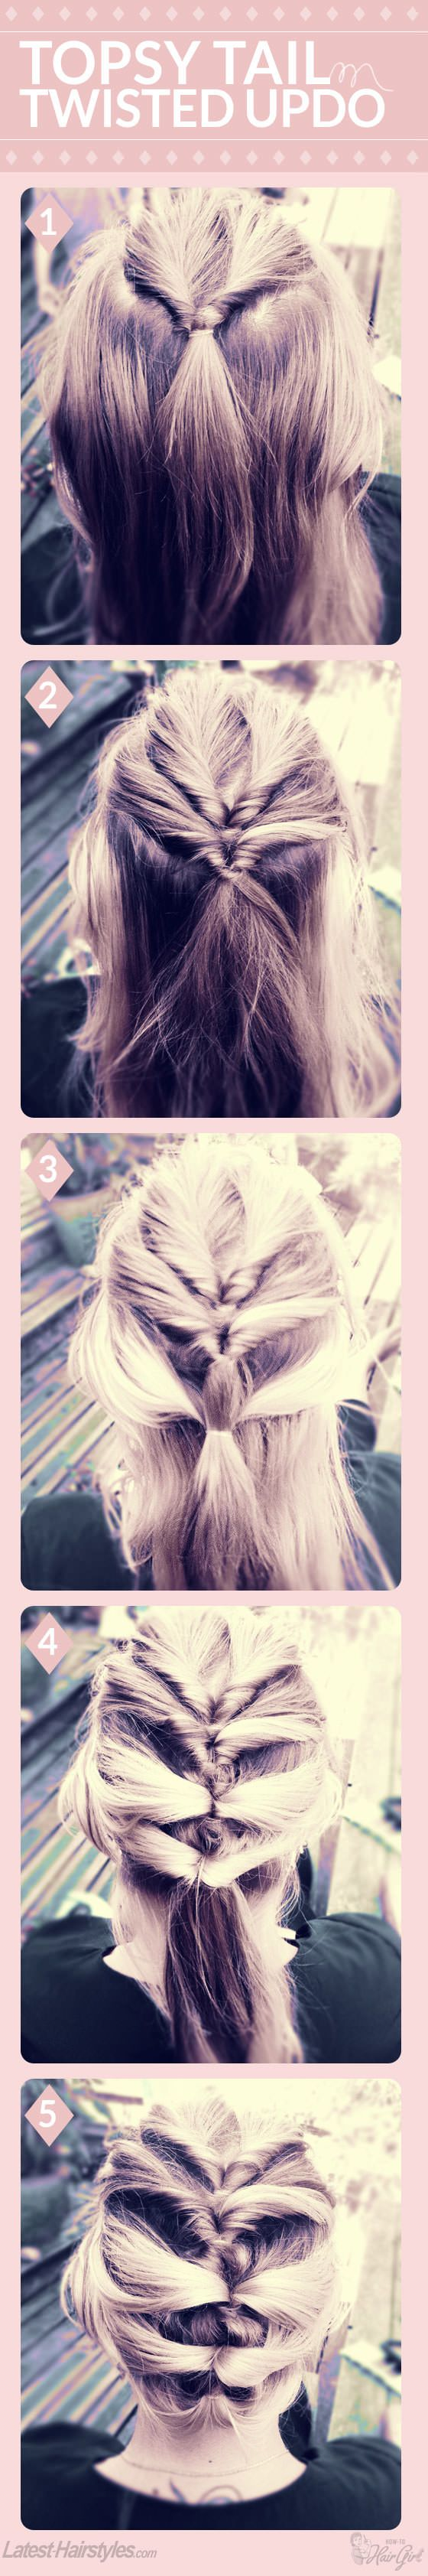 DIY Topsy Tail Twisted Updo Pictures, Photos, and Images for Facebook, Tumblr…